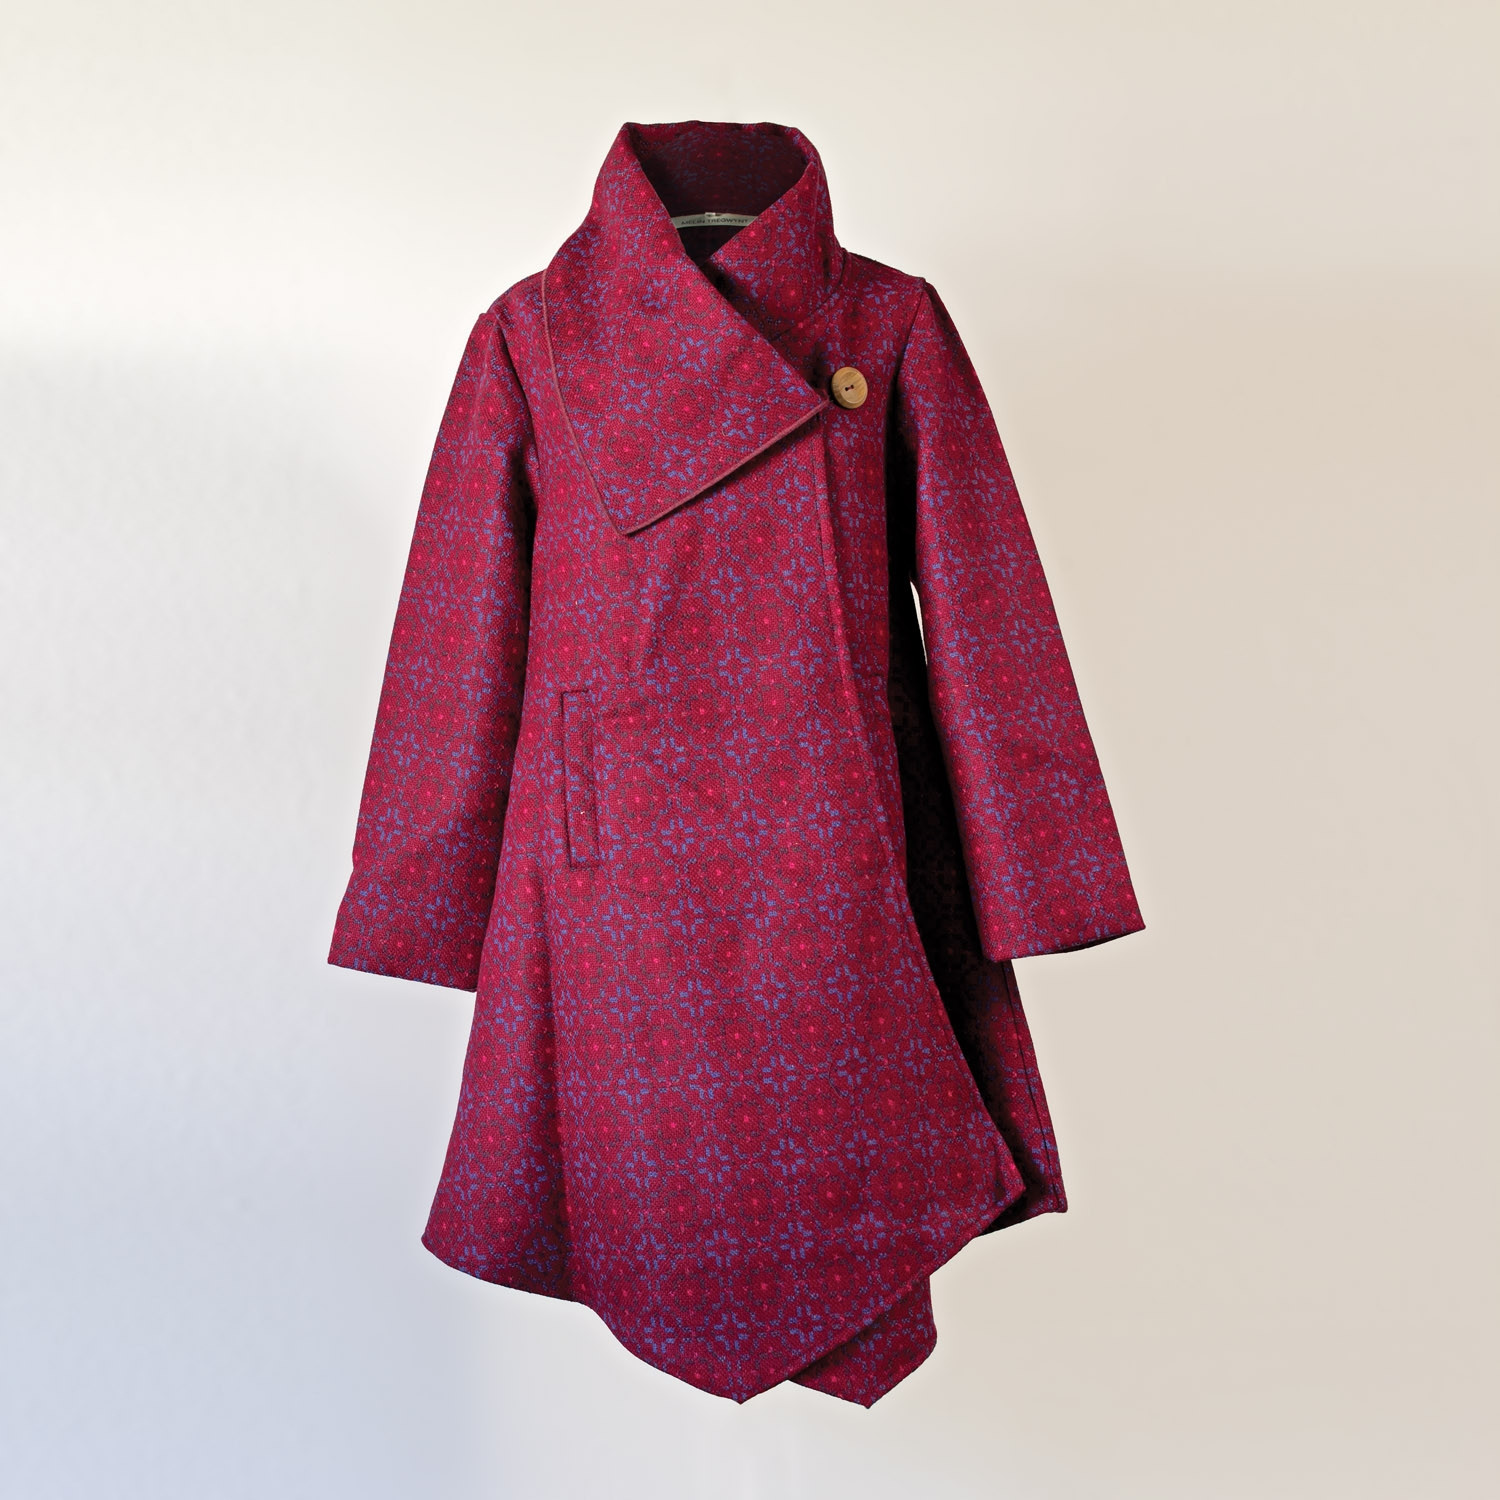 Vintage rose redberry draped coat